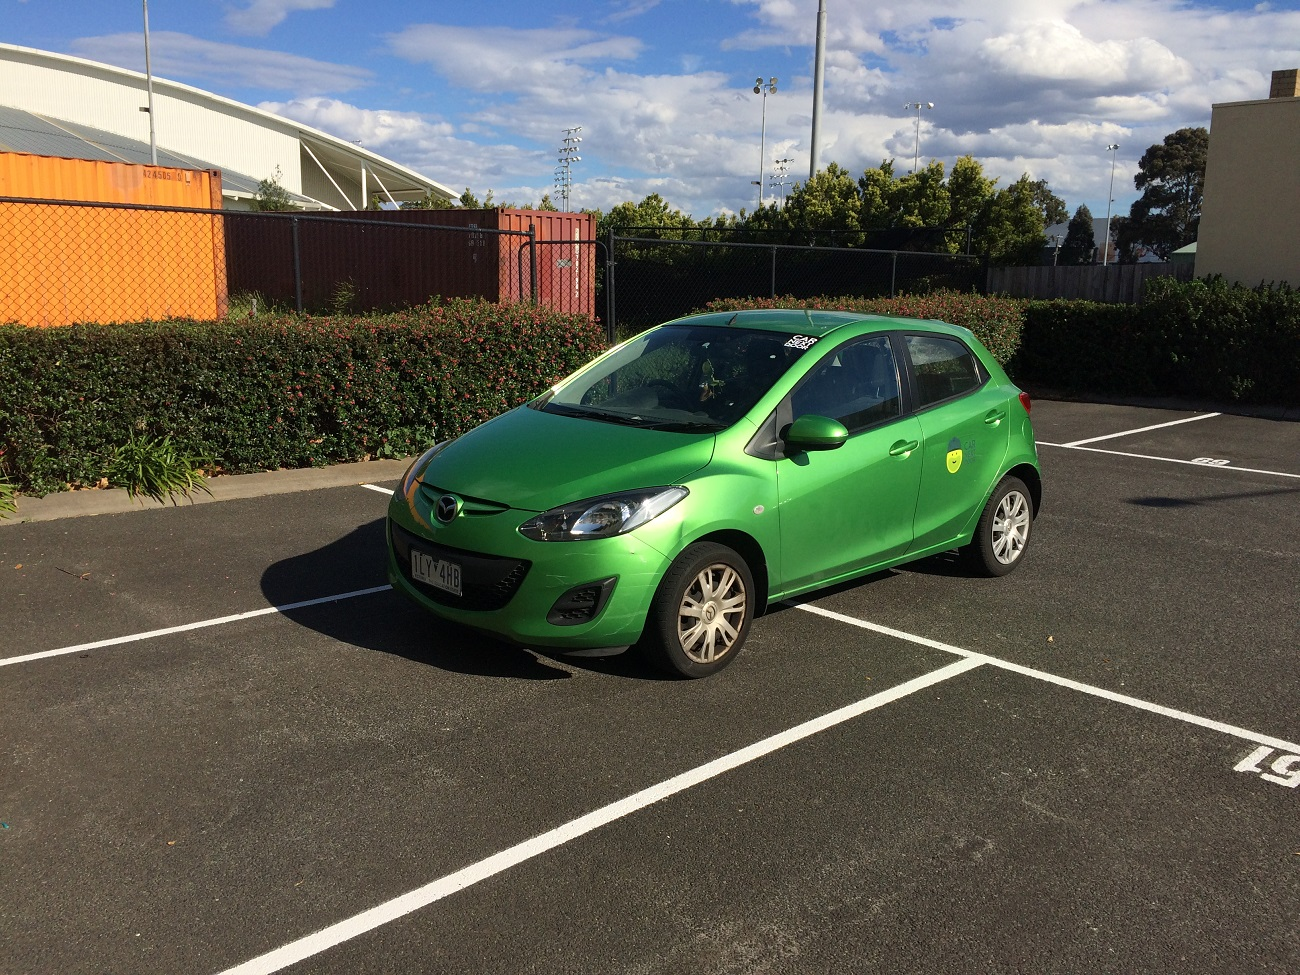 Picture of Nikki's 2012 Mazda 2